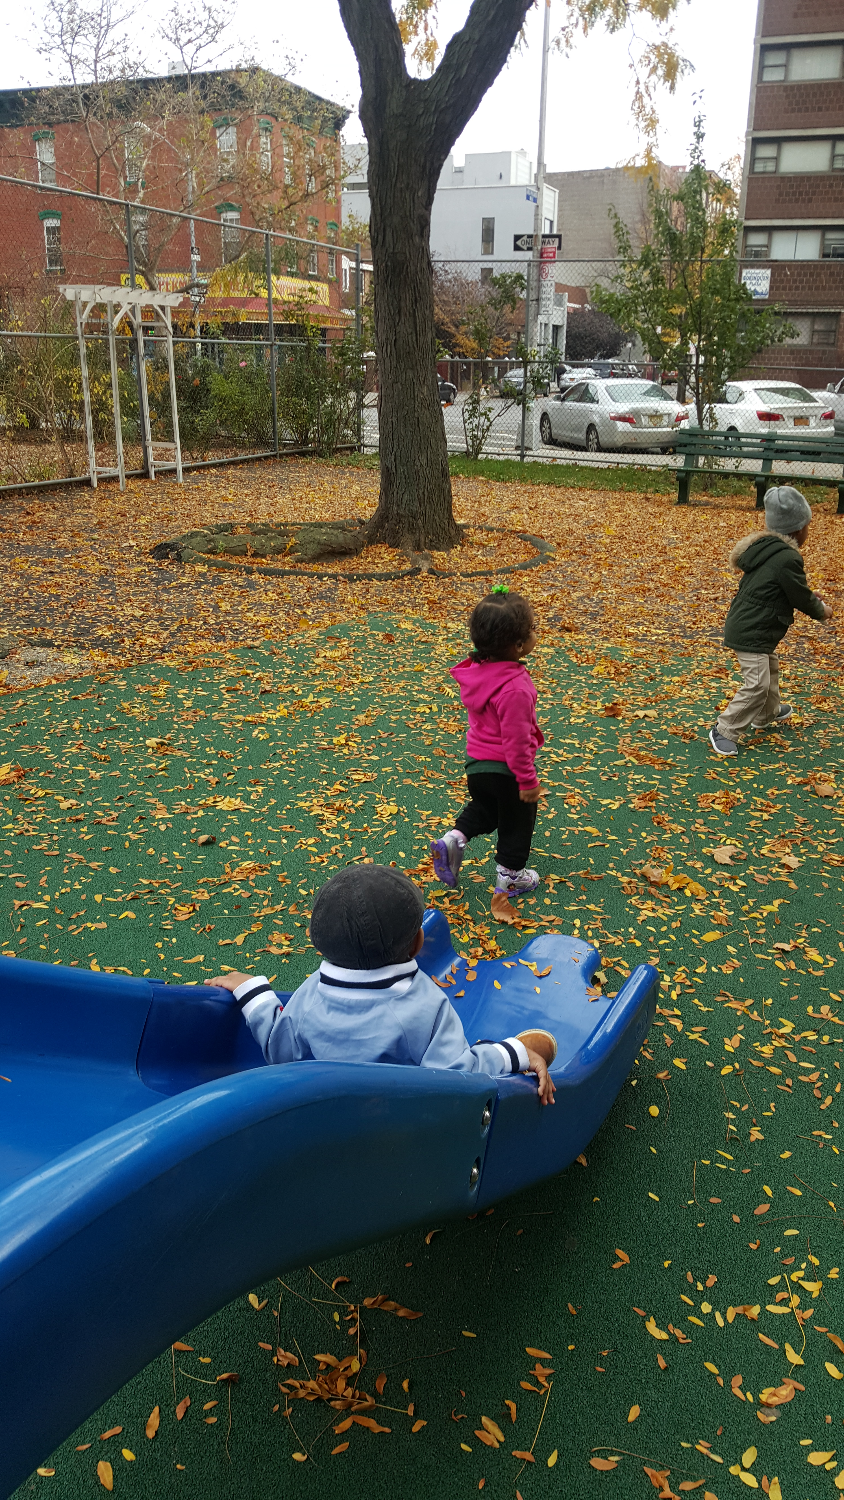 Outdoor play is a fun everyday